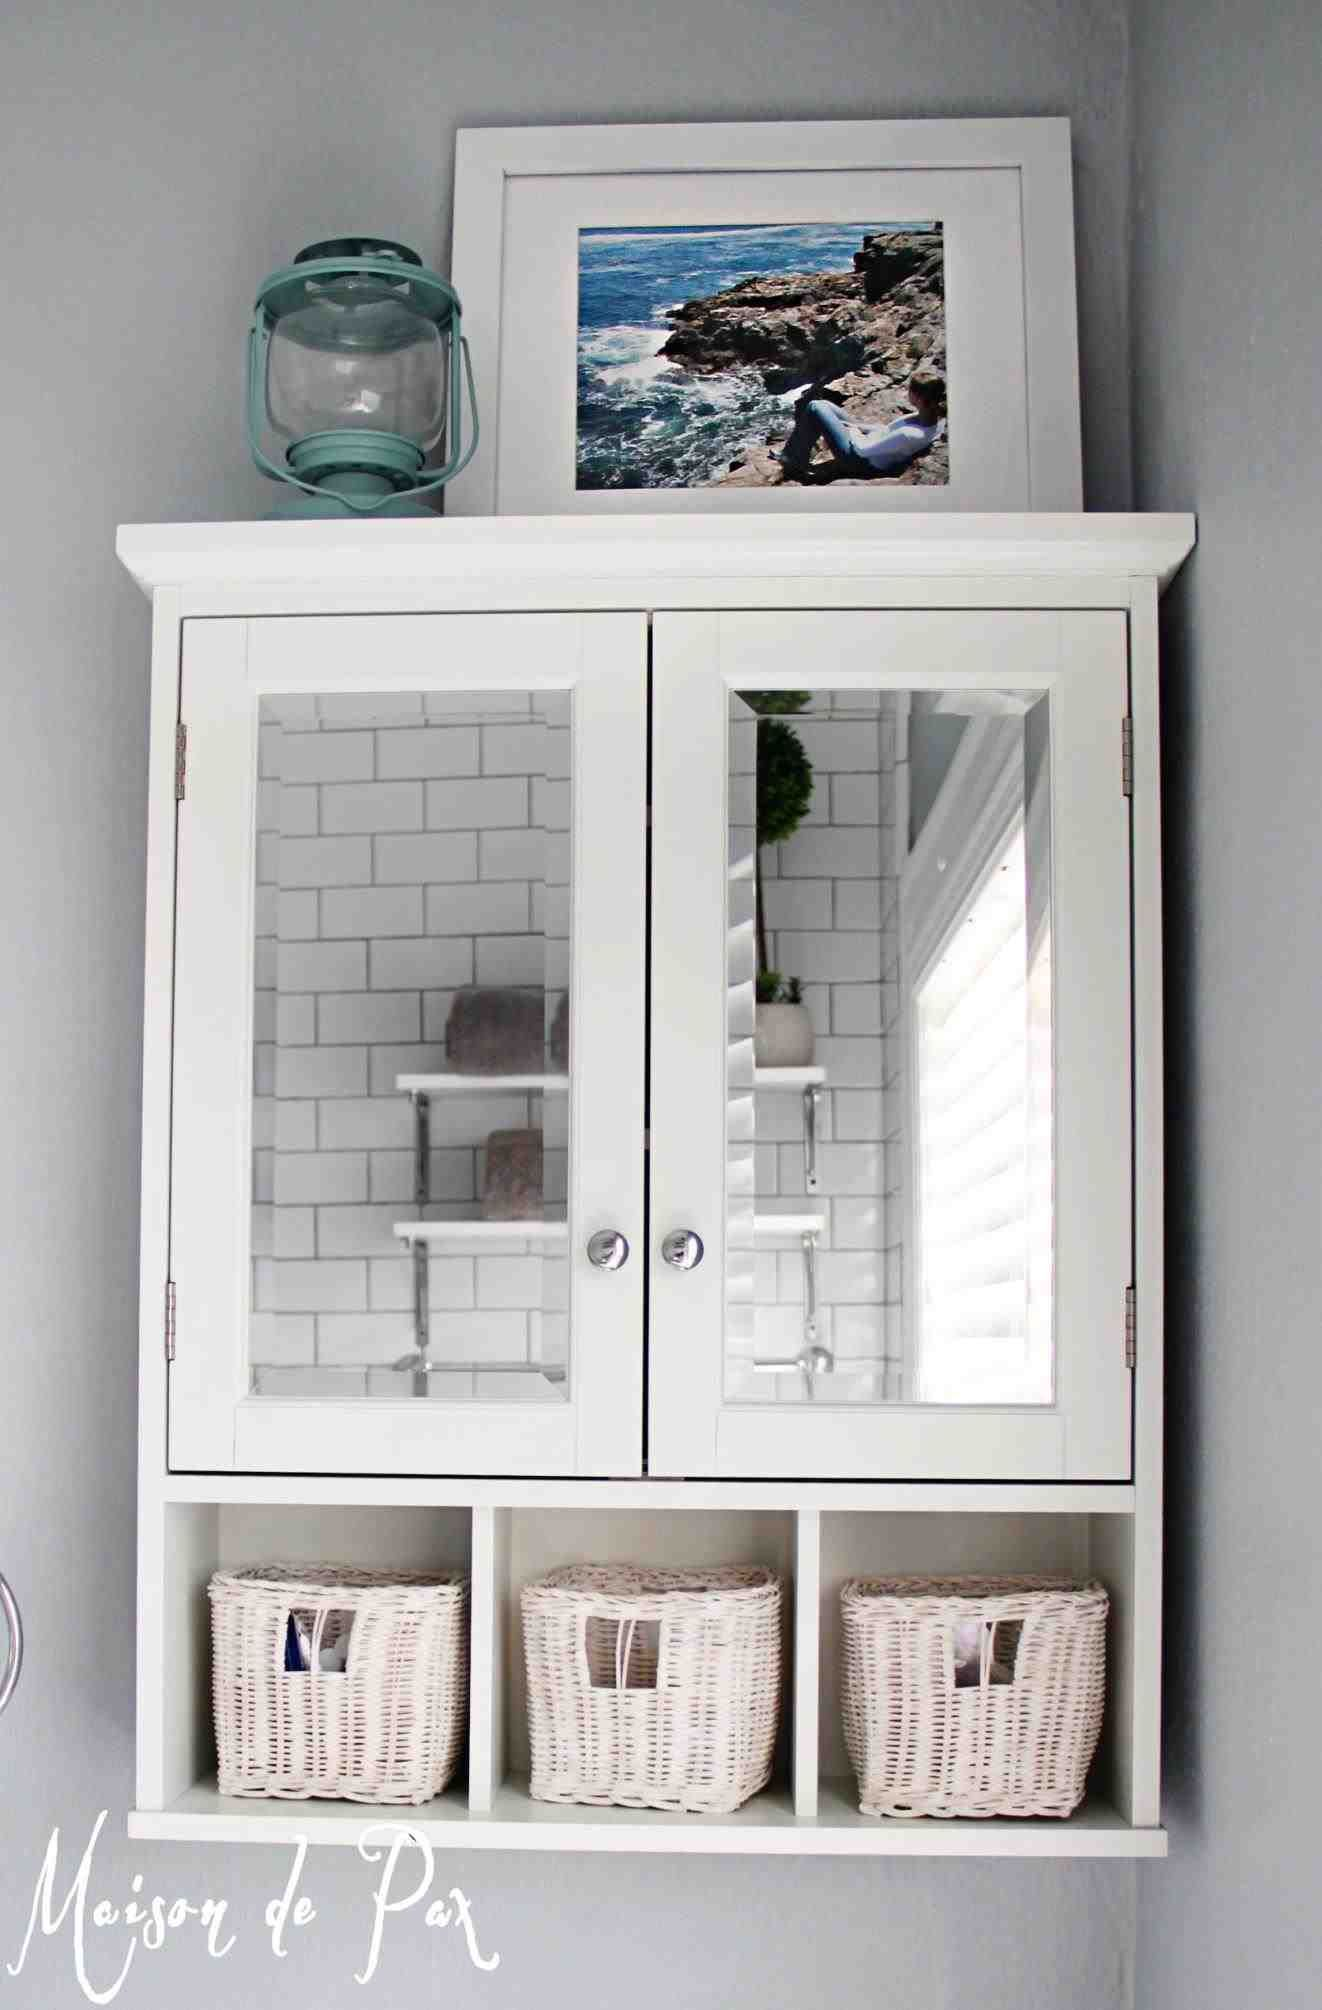 White Bathroom Wall Cabinet With Towel Bar Bathroom Wall Storage Bathroom Cabinets Over Toilet Bathroom Wall Cabinets